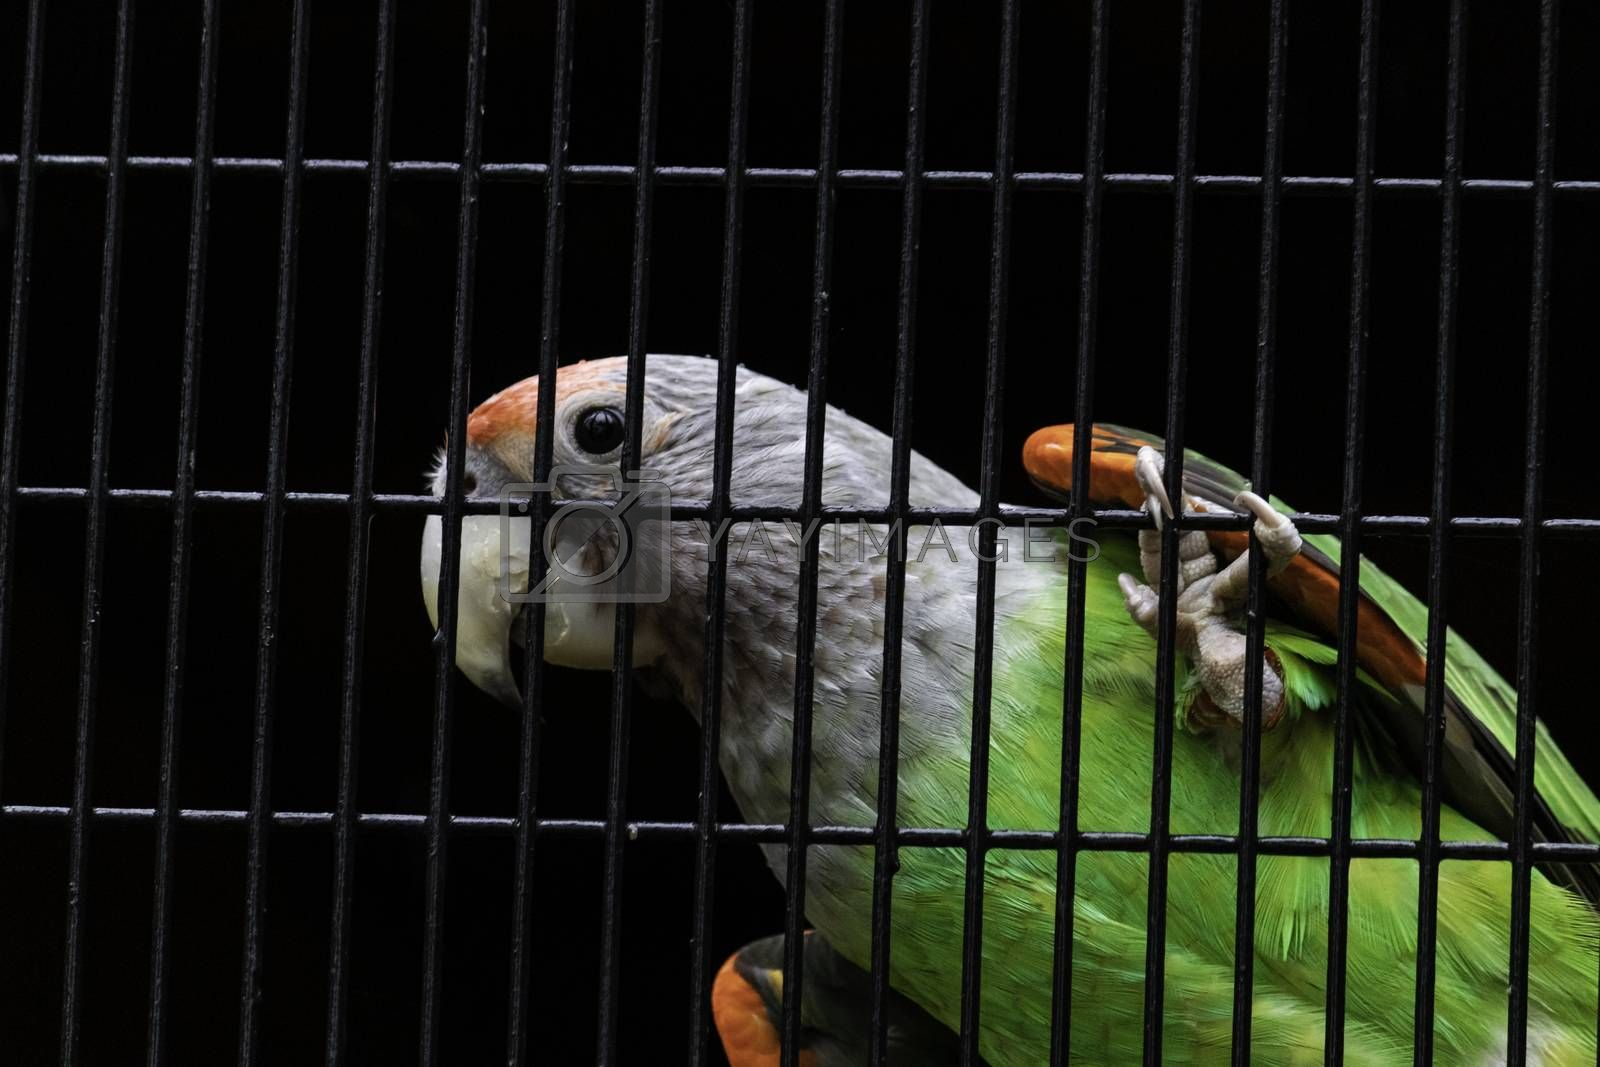 Senegal parrot silver neck looking curious hanging in cage net Closeup